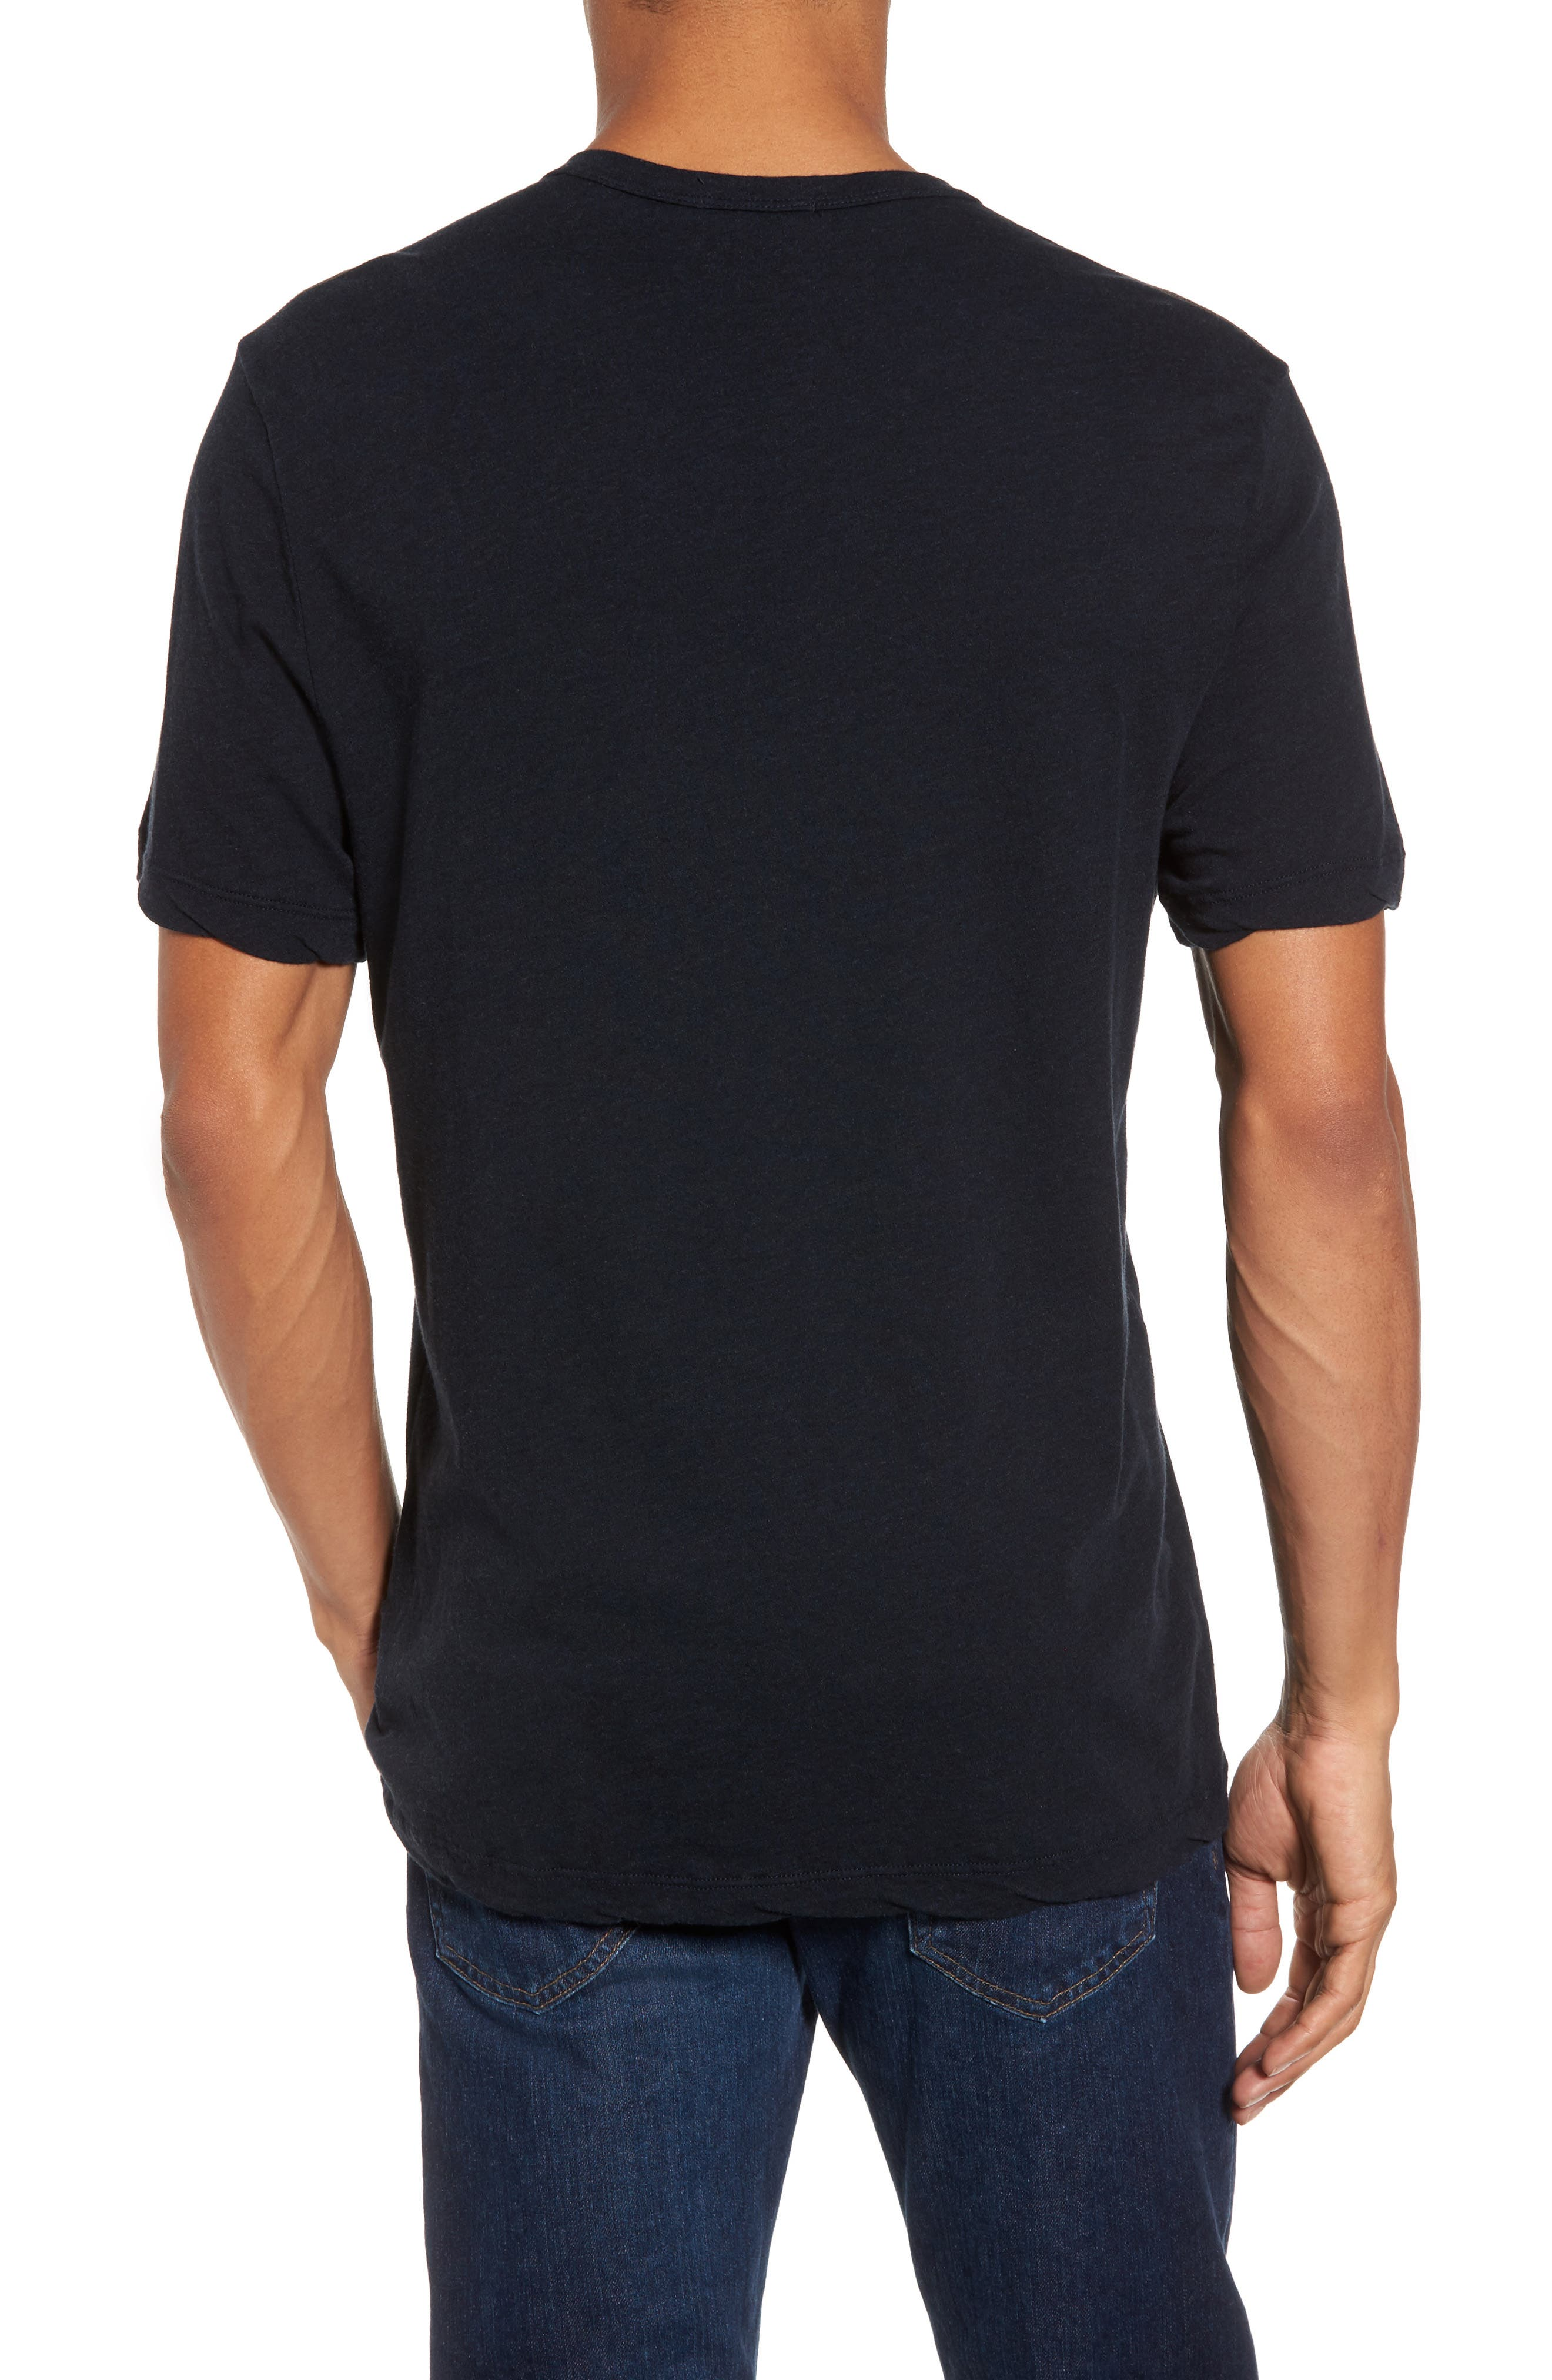 Alternate Image 2  - James Perse Contrast Stitch Henley T-Shirt